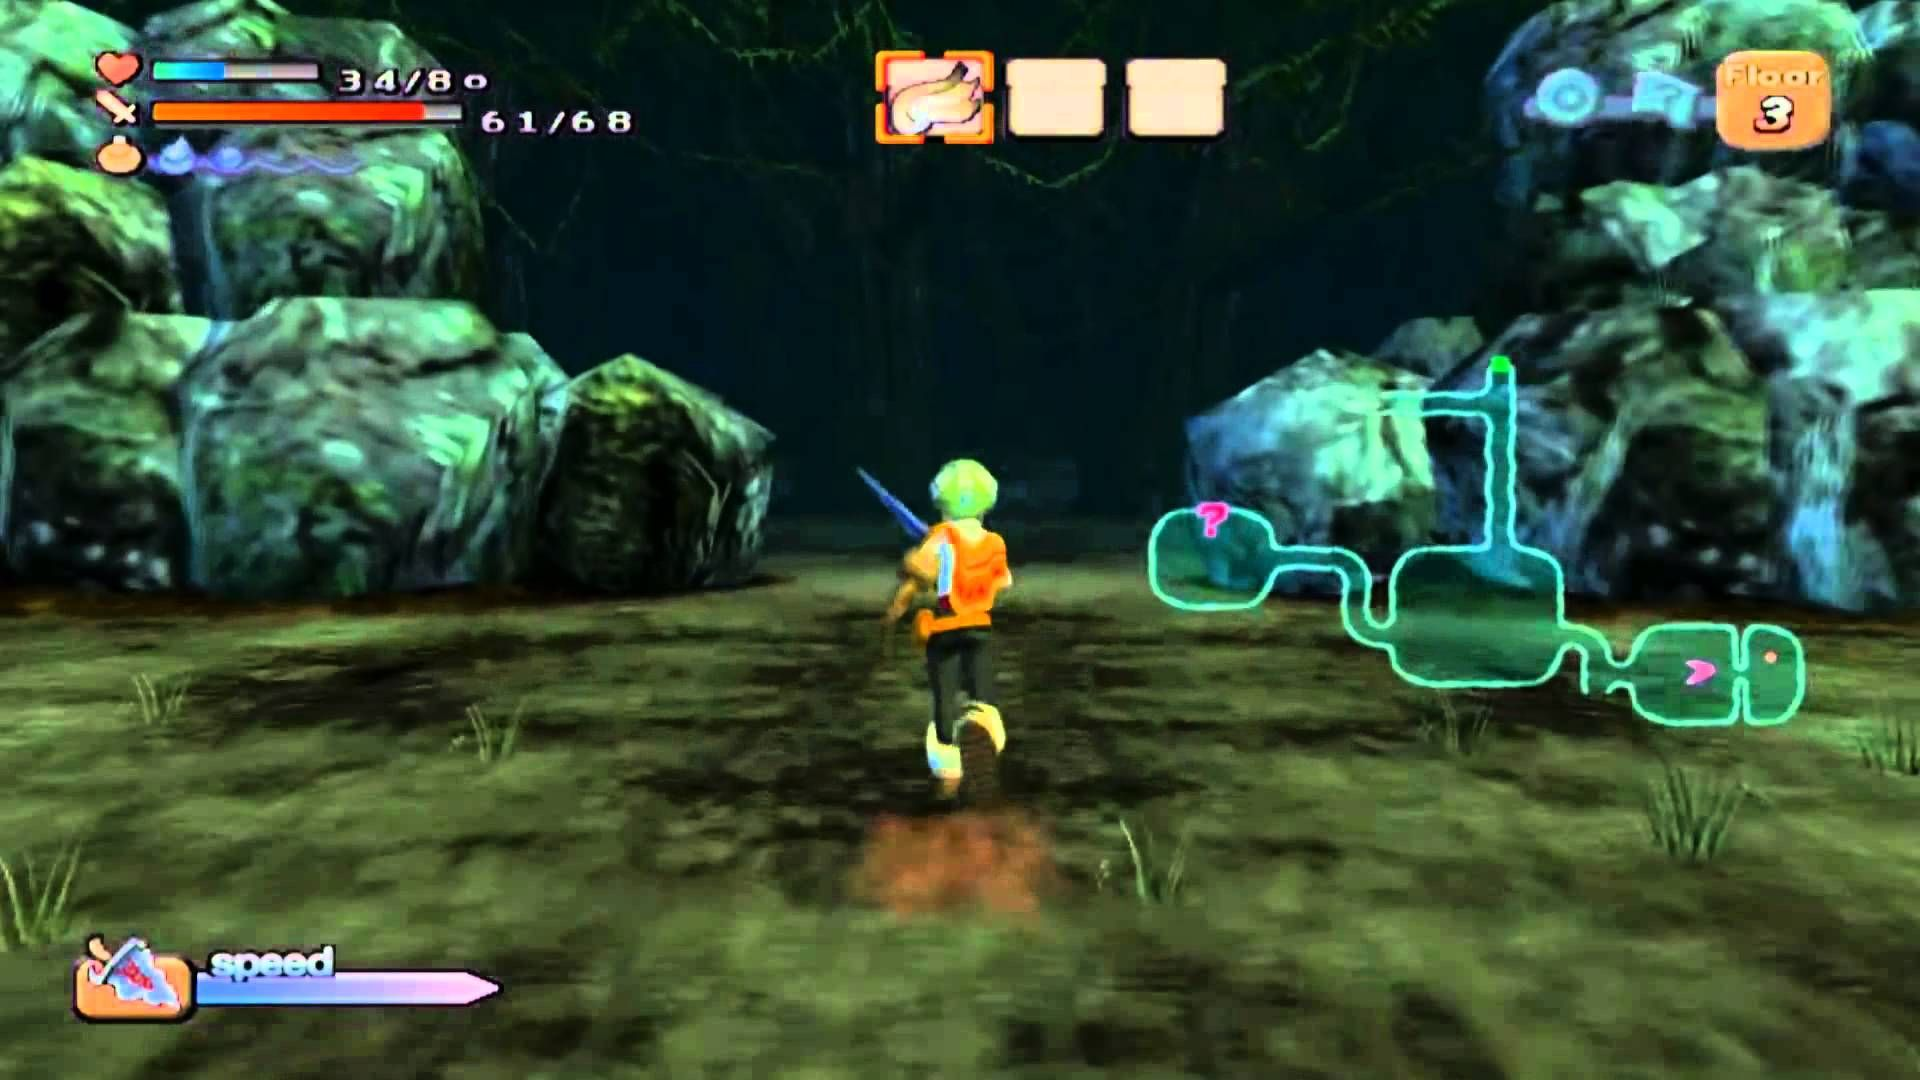 Dark Cloud on PCSX2 - Wise Owl Forest | Classic and Retro Gameplay